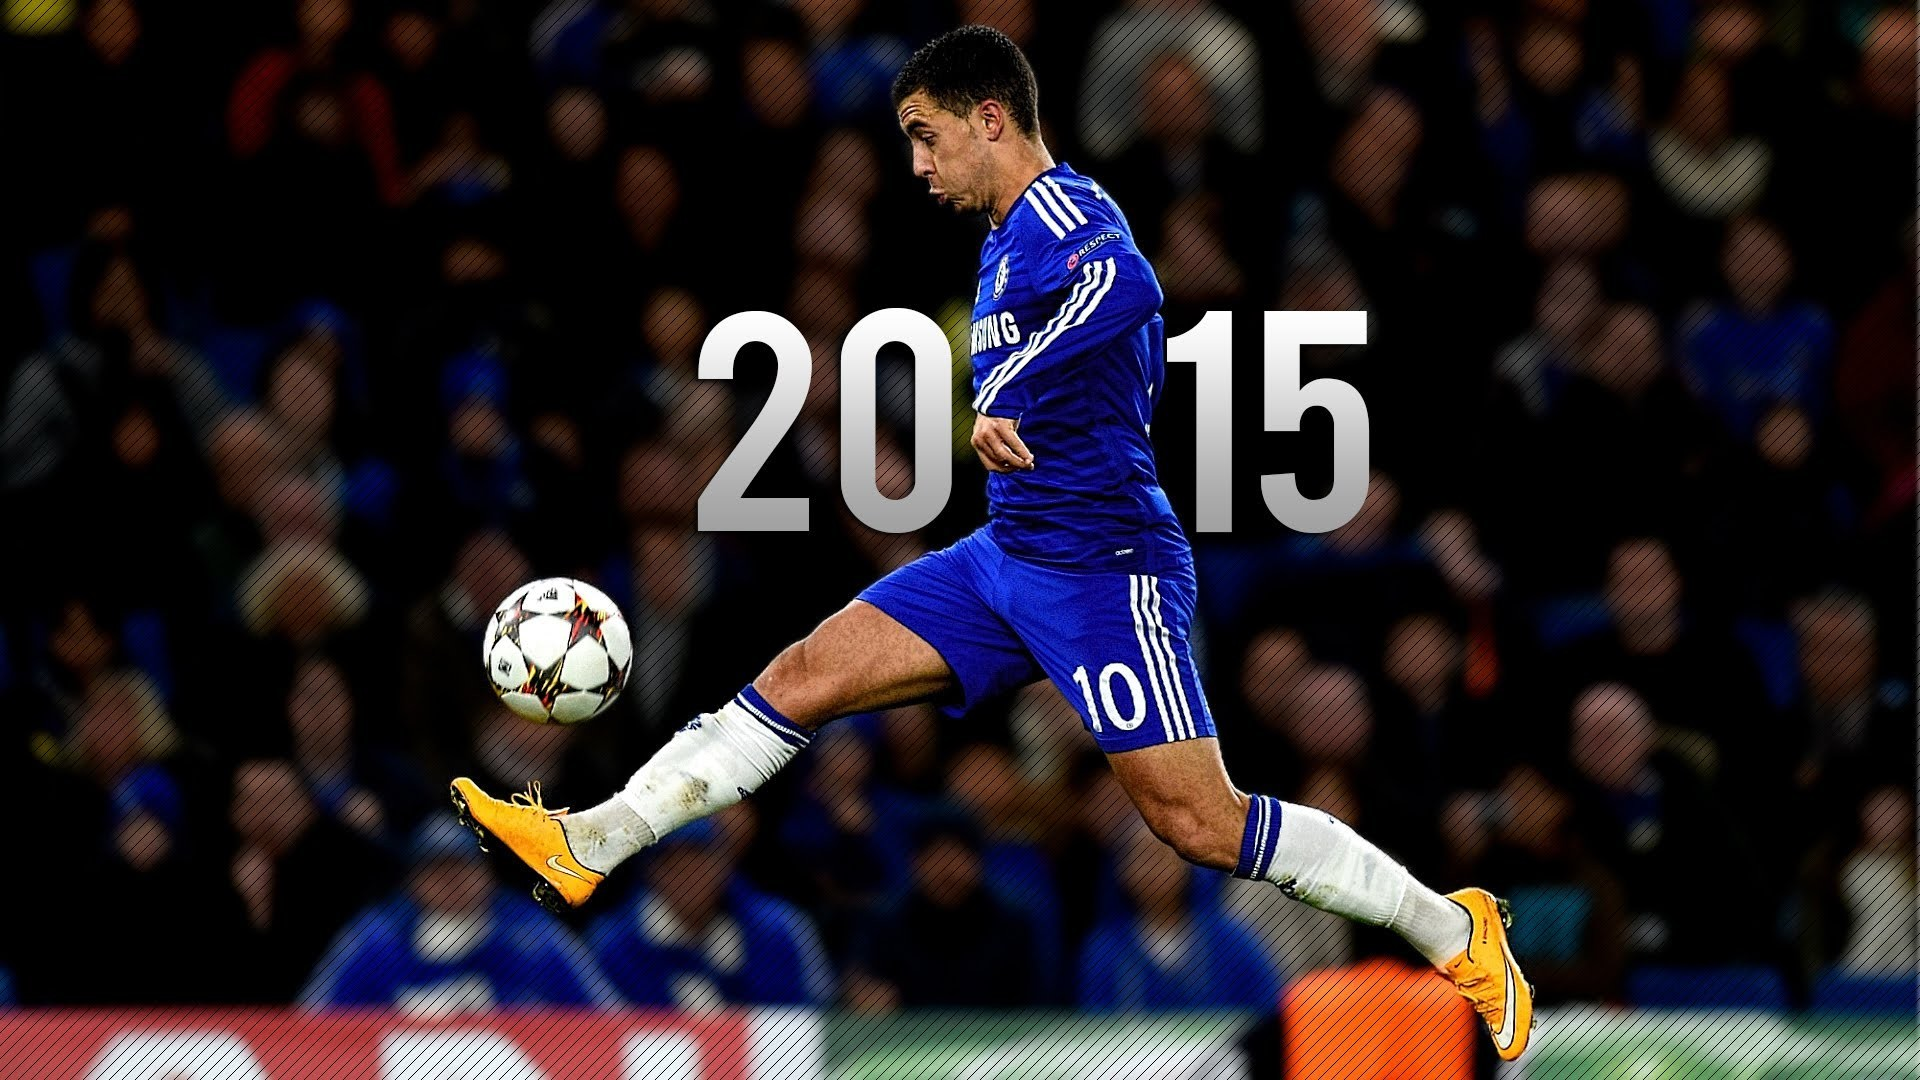 Chelsea HD Wallpapers 1080p (75+ Images